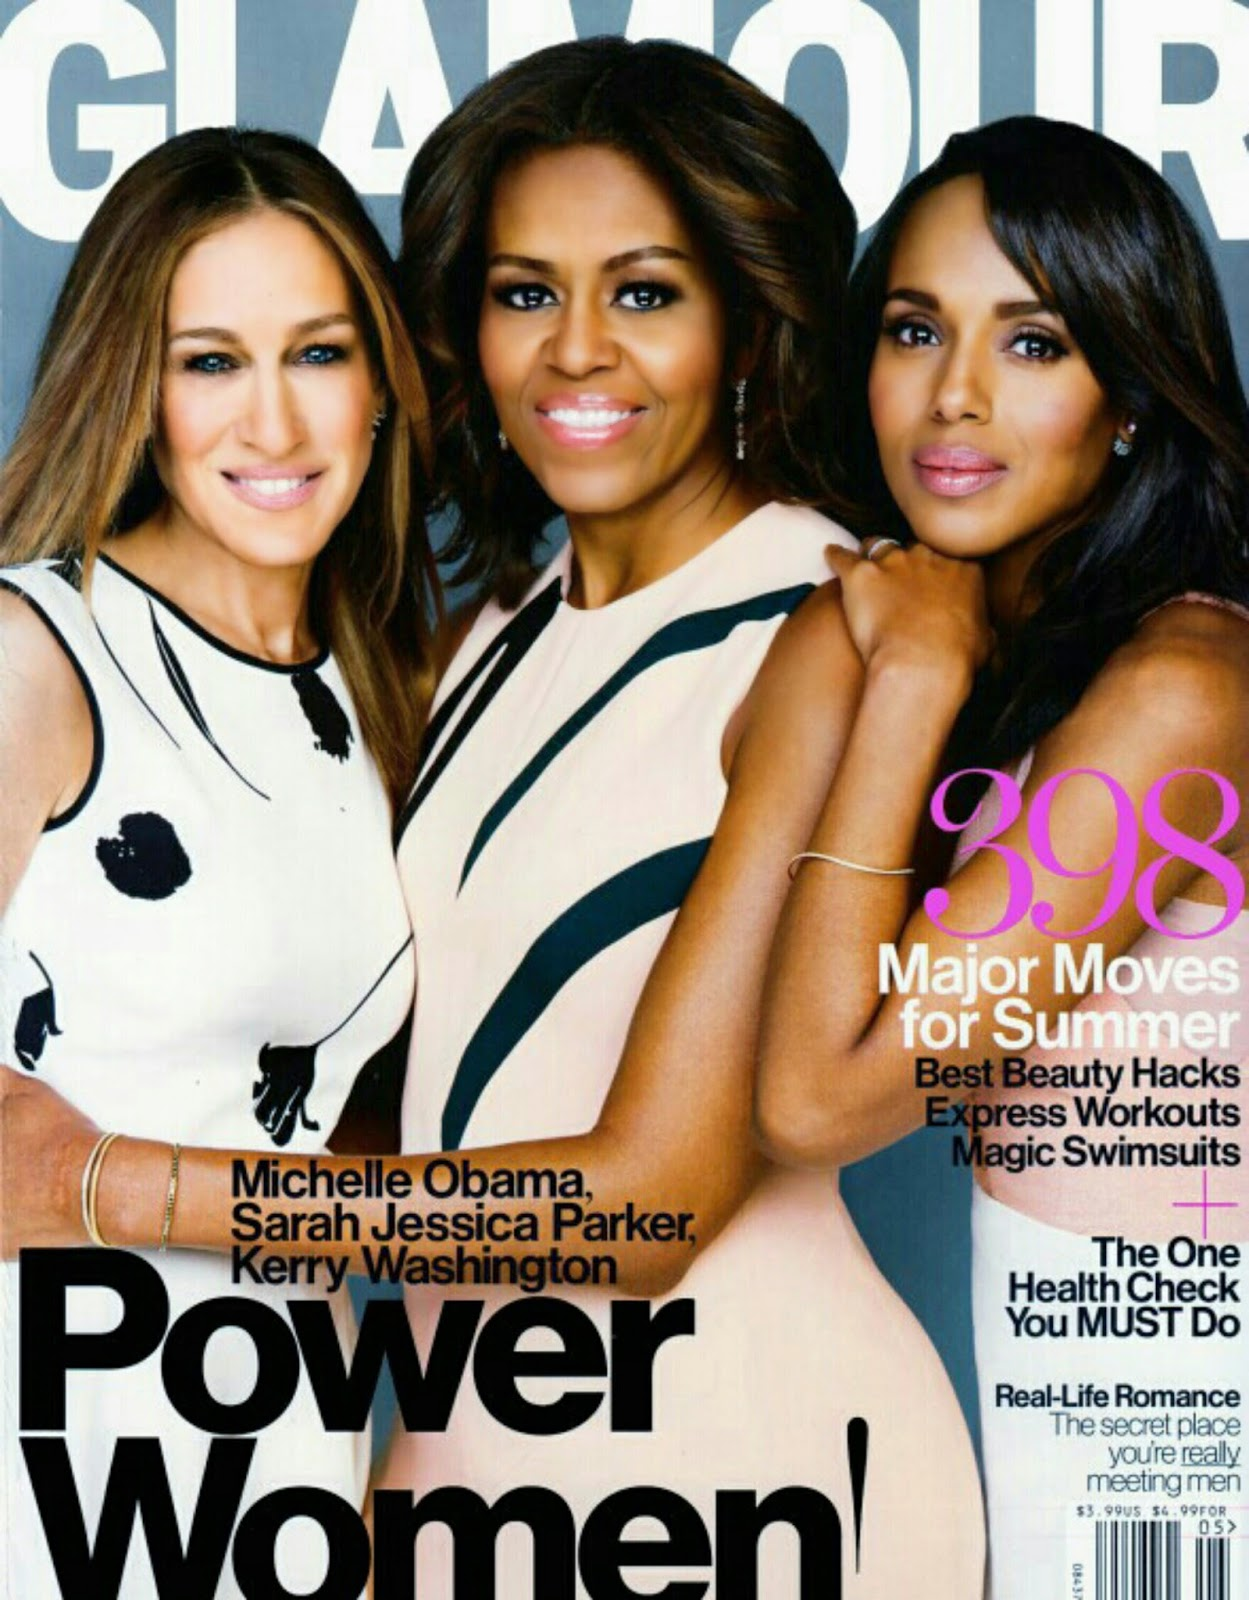 Sarah Jessica Parker, Michelle Obama & Kerry Washington by Patrick Demarchelier for Glamour US